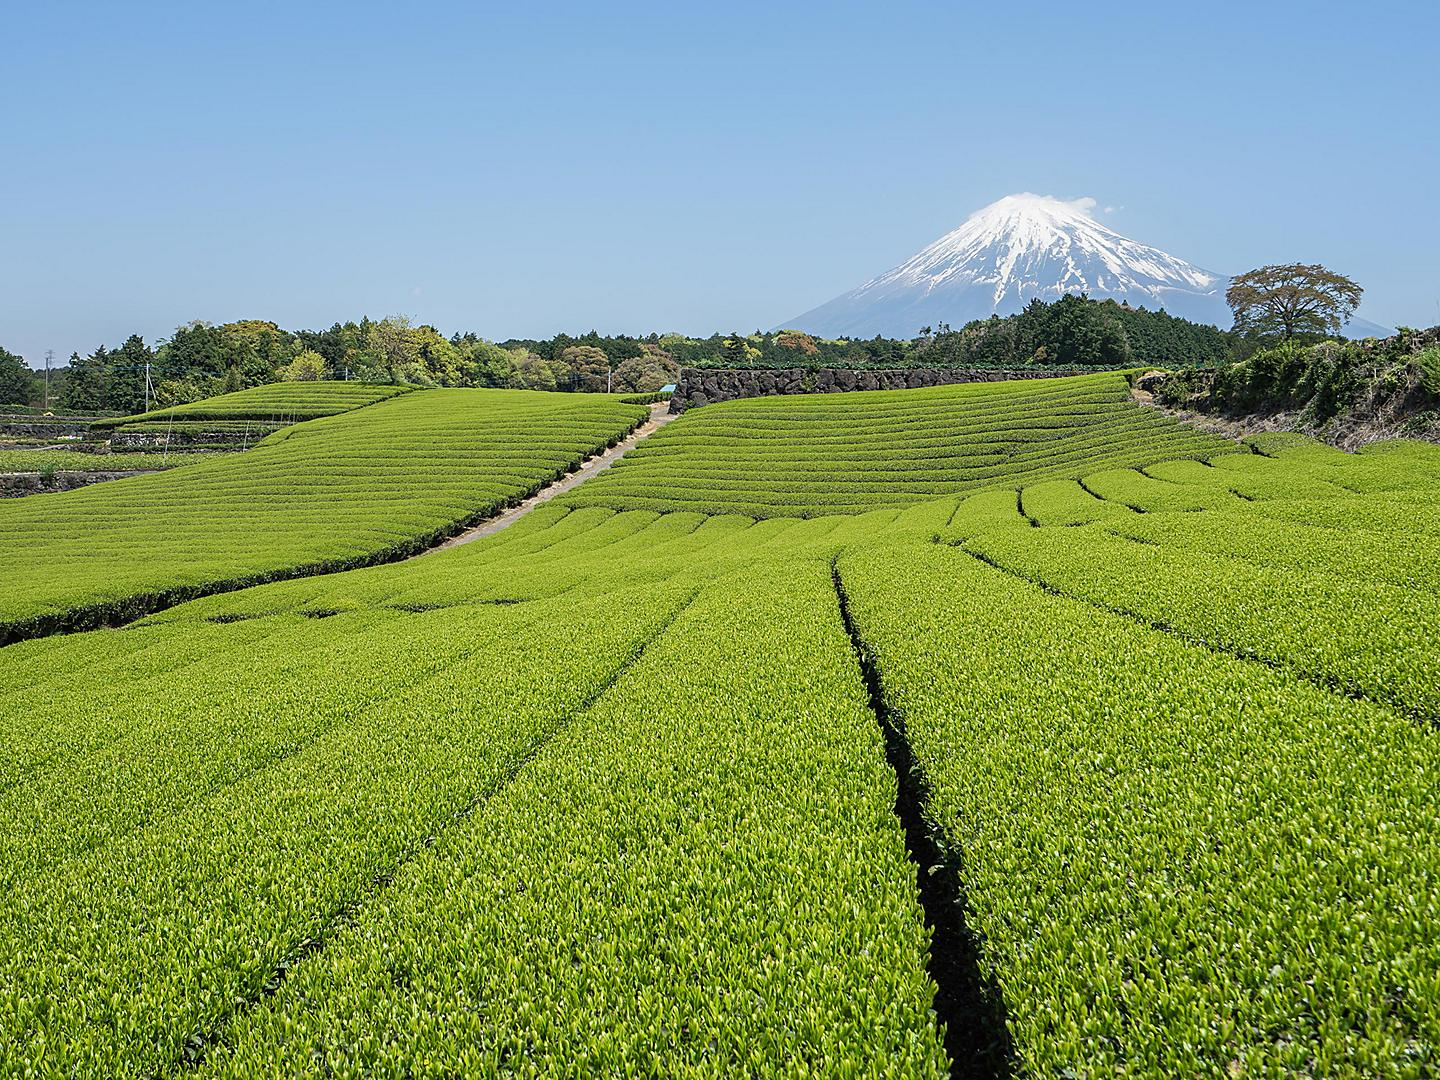 Mt. Fuji, Shimuzi, Japan Green Tea Fields